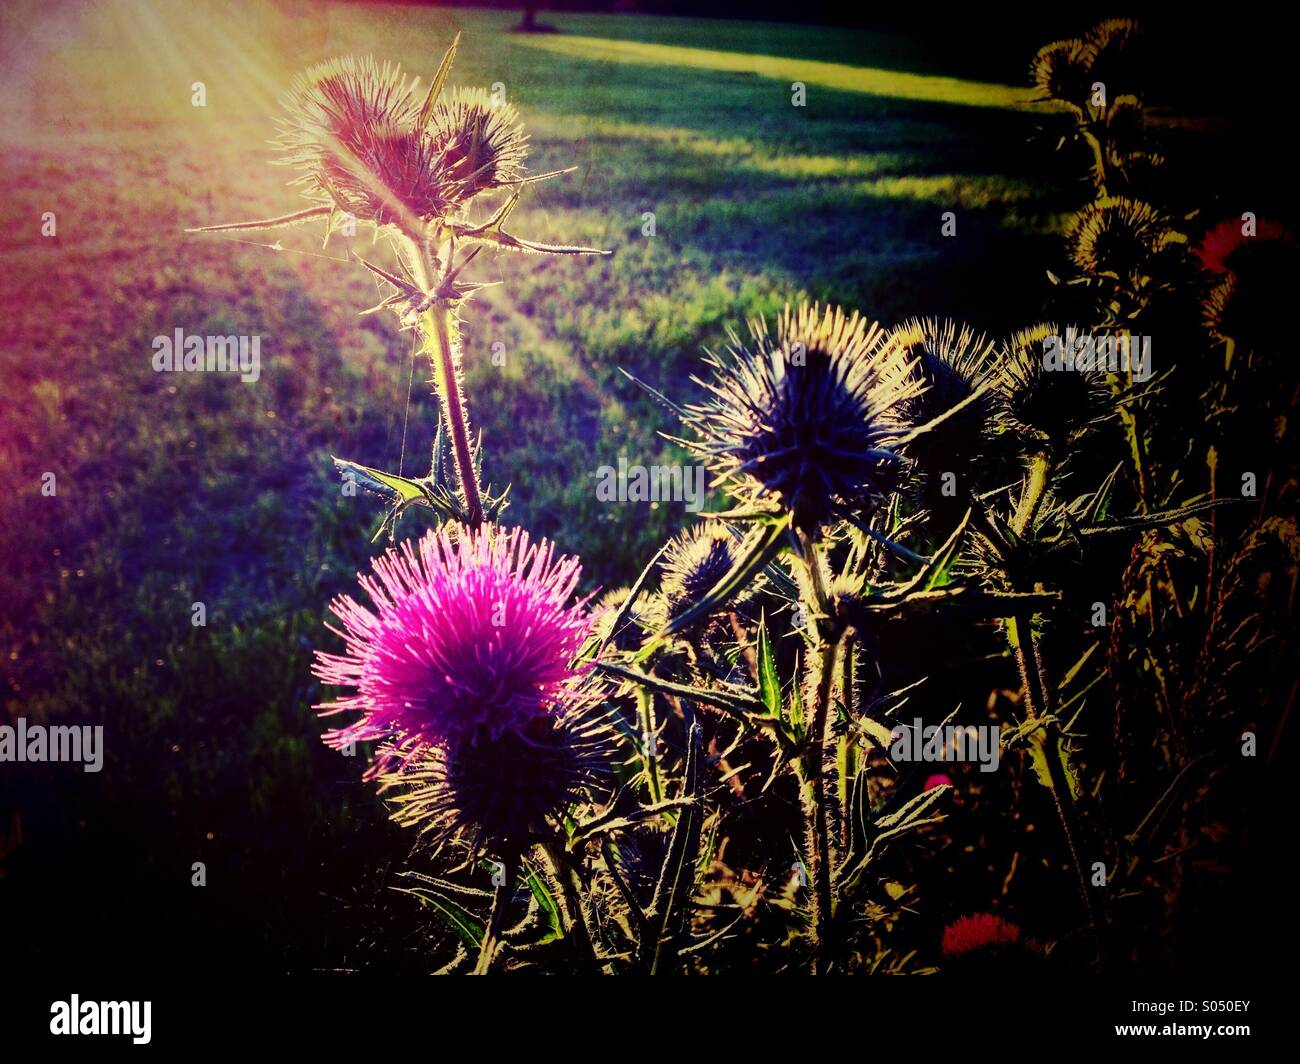 Backlit thistles at sunset - Stock Image